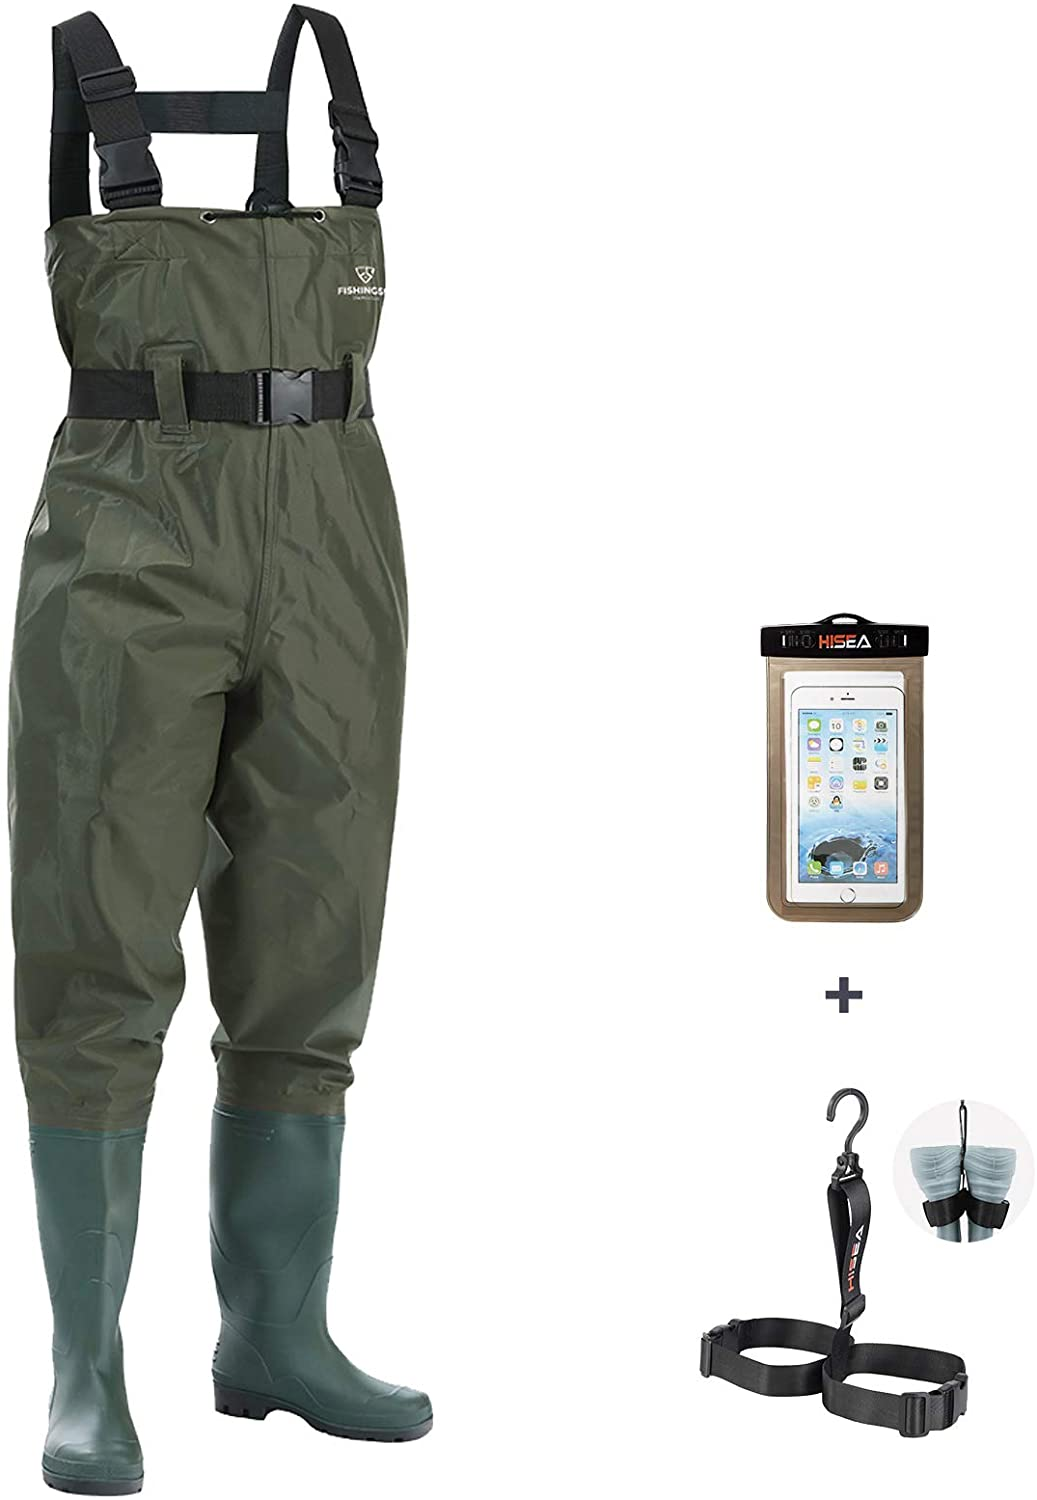 FISHINGSIR Fishing Chest Waders for Men H Boots with Regular store Womens Tucson Mall Mens